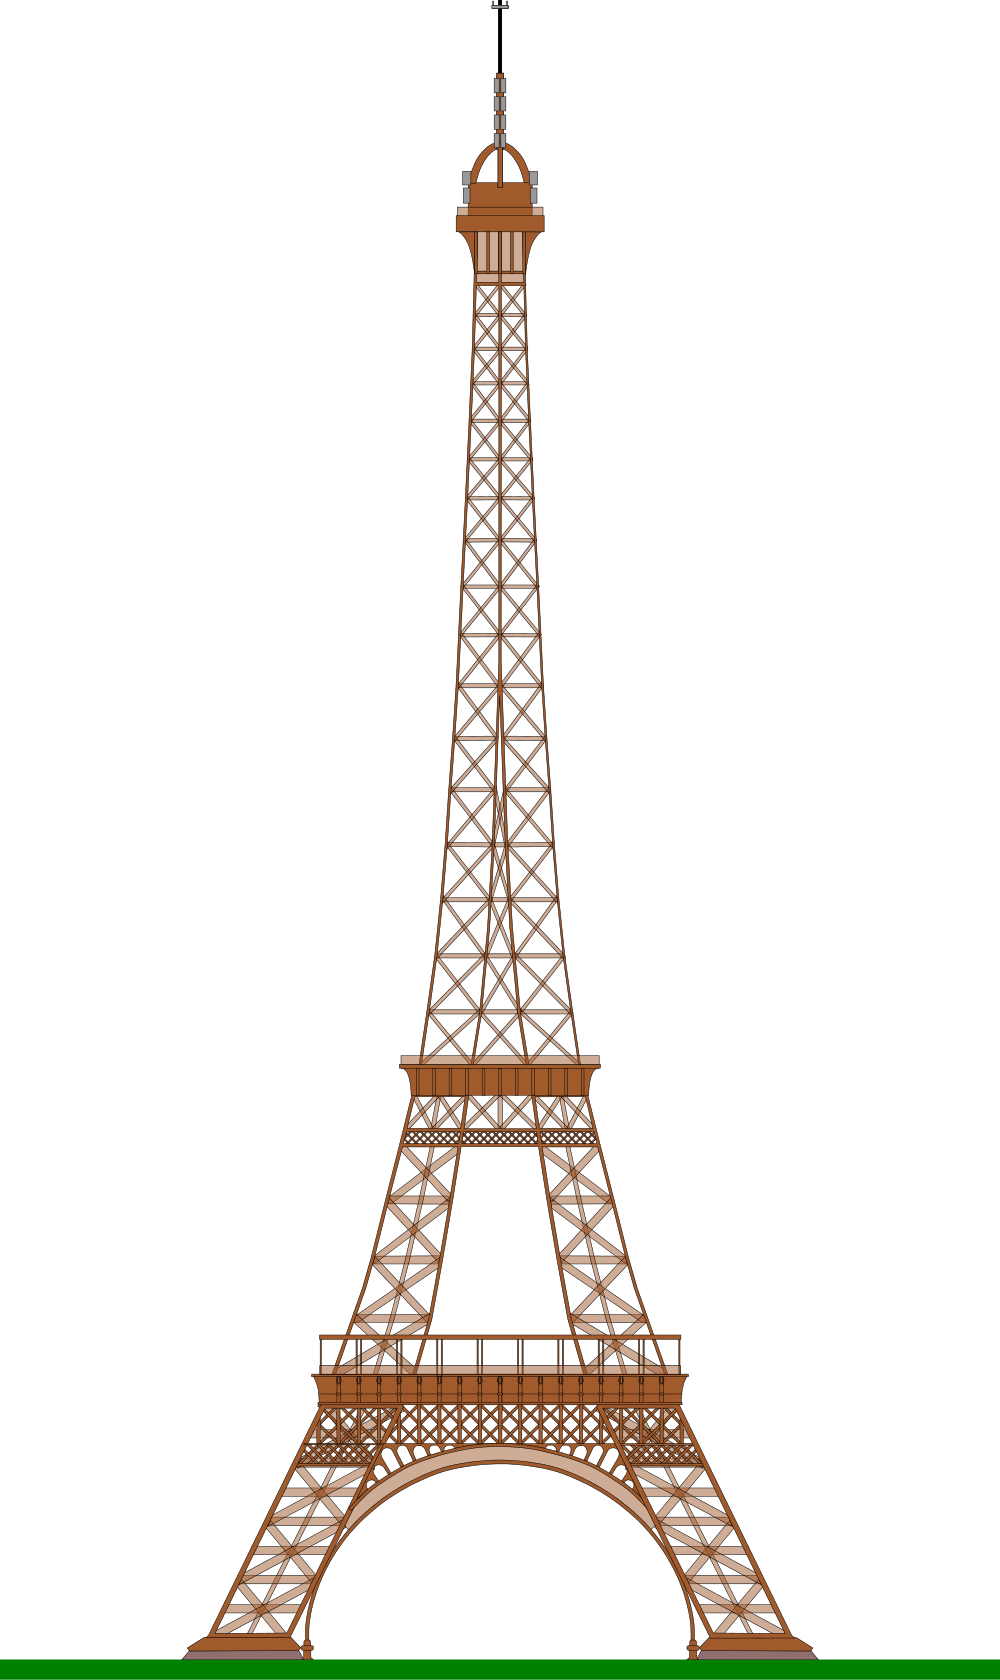 Eiffel Tower svg #18, Download drawings